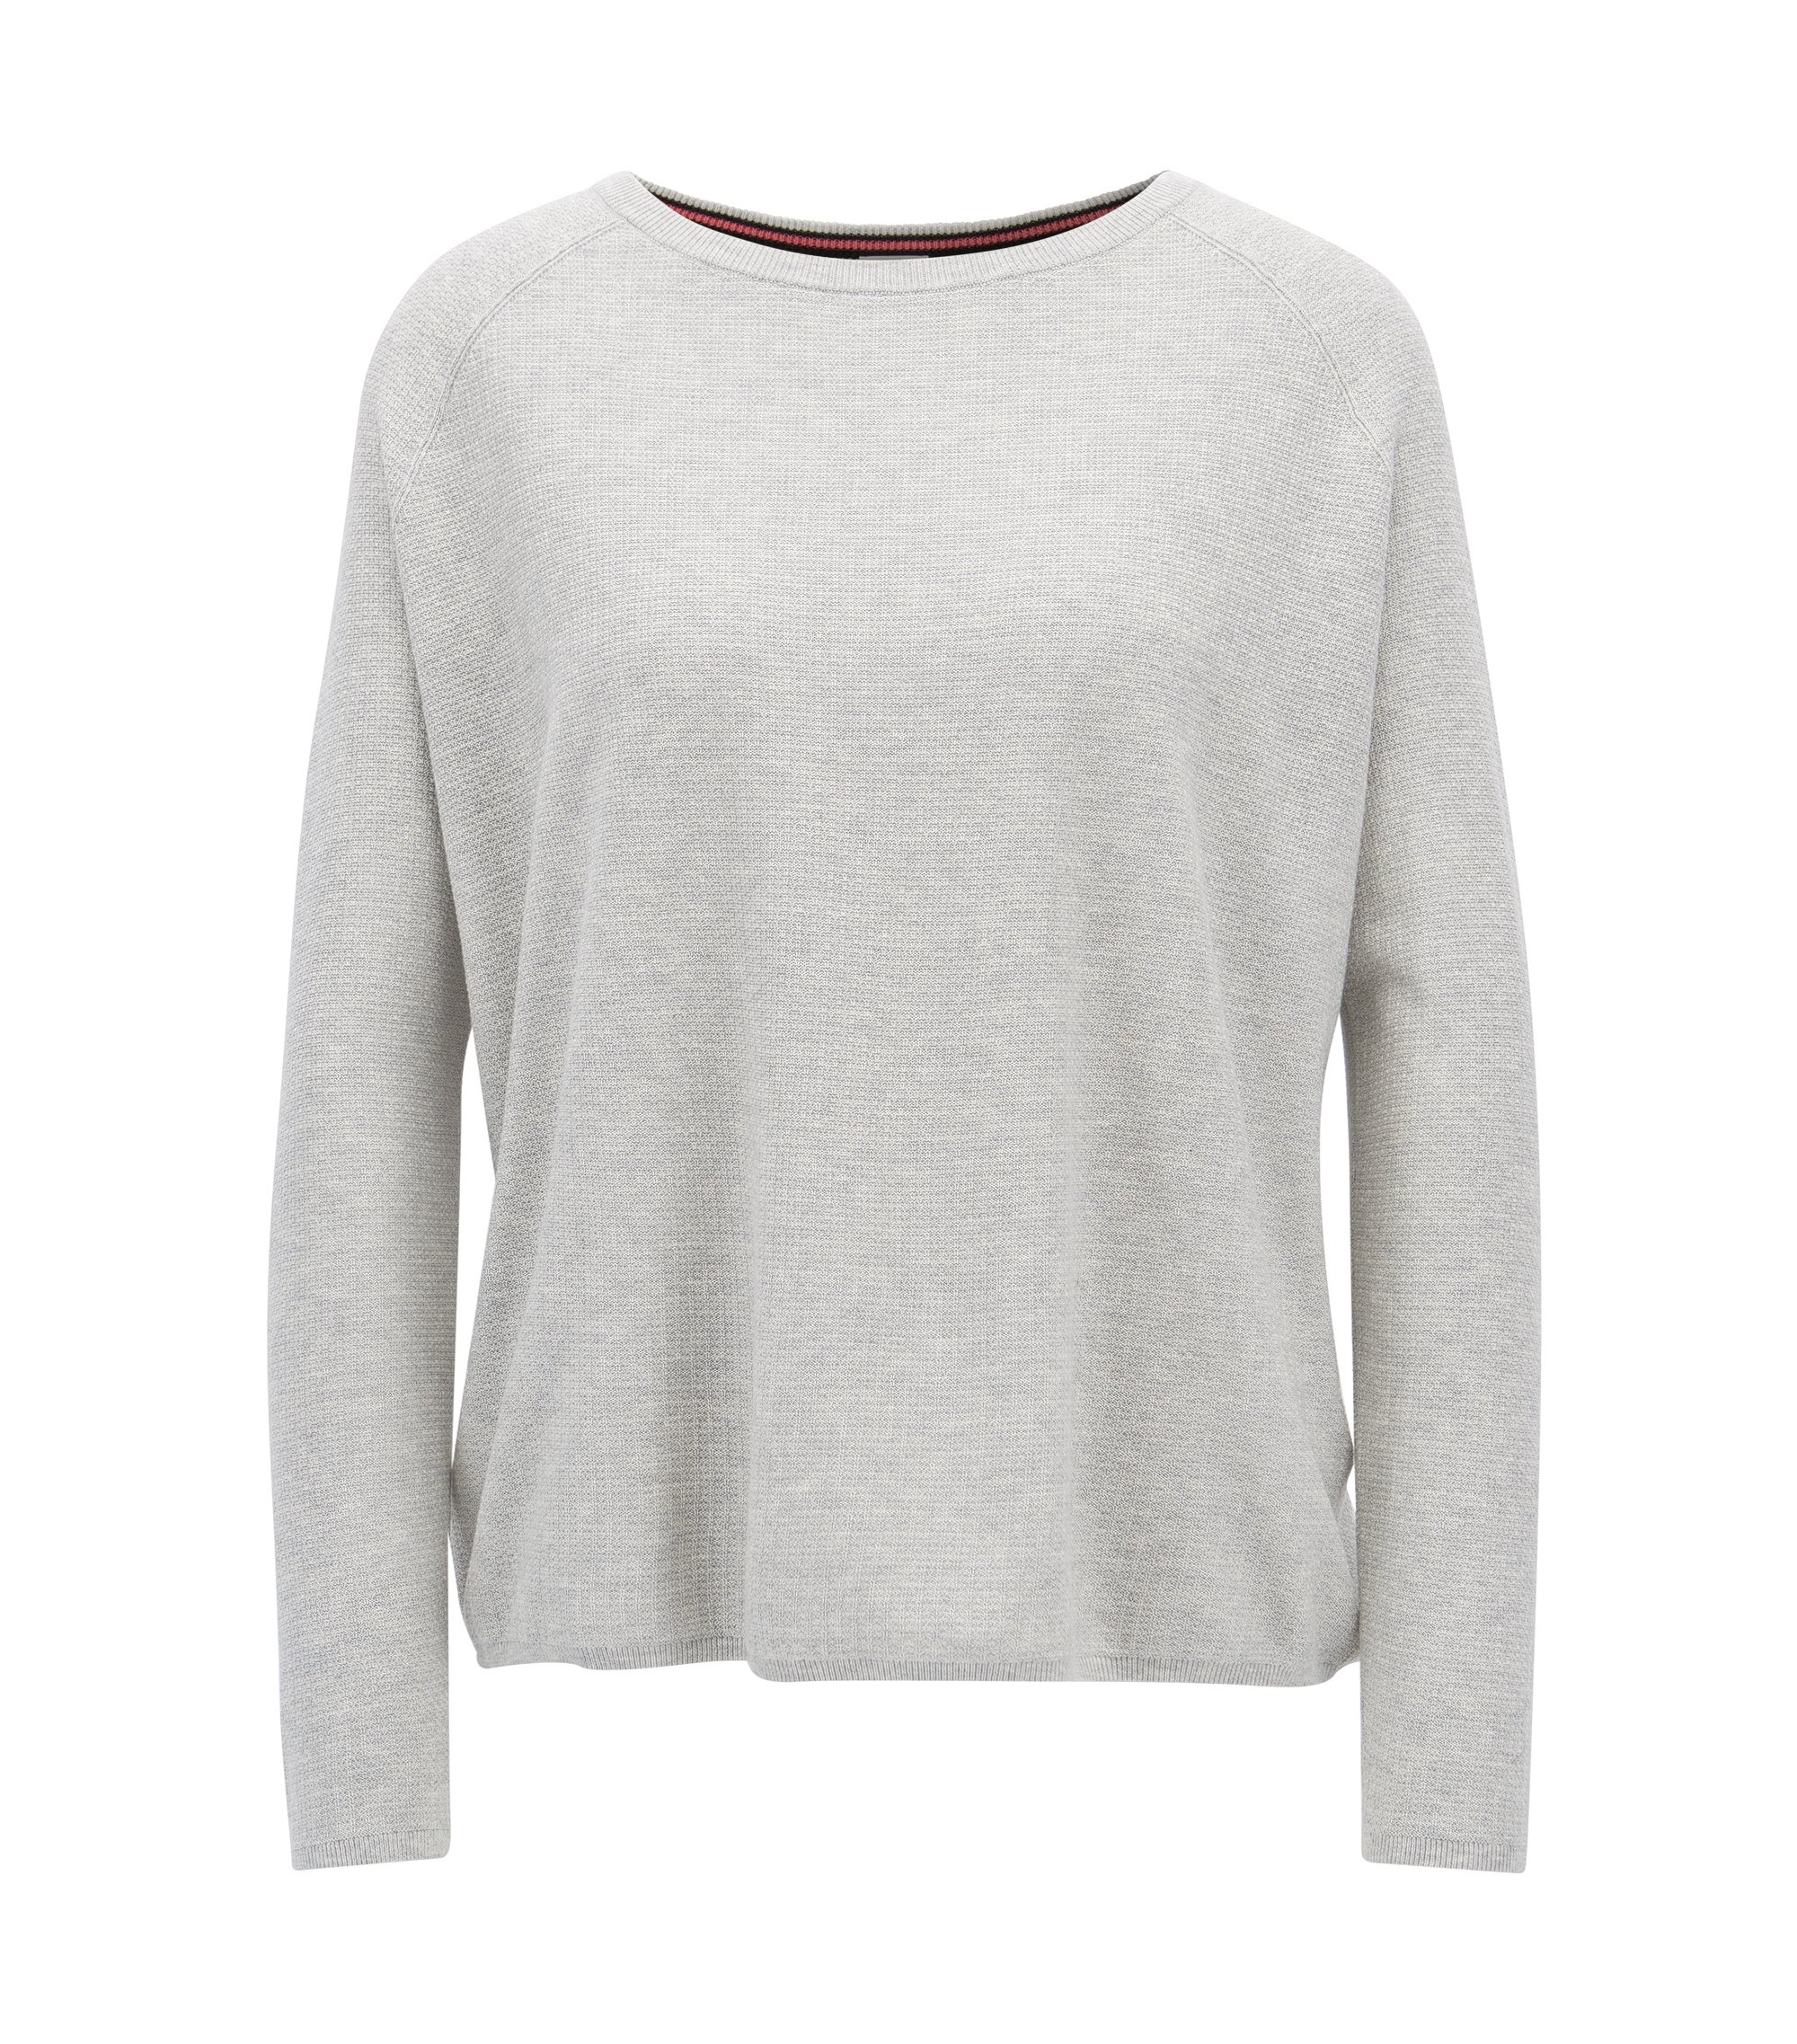 Relaxed-fit sweater in a cotton blend, Light Grey